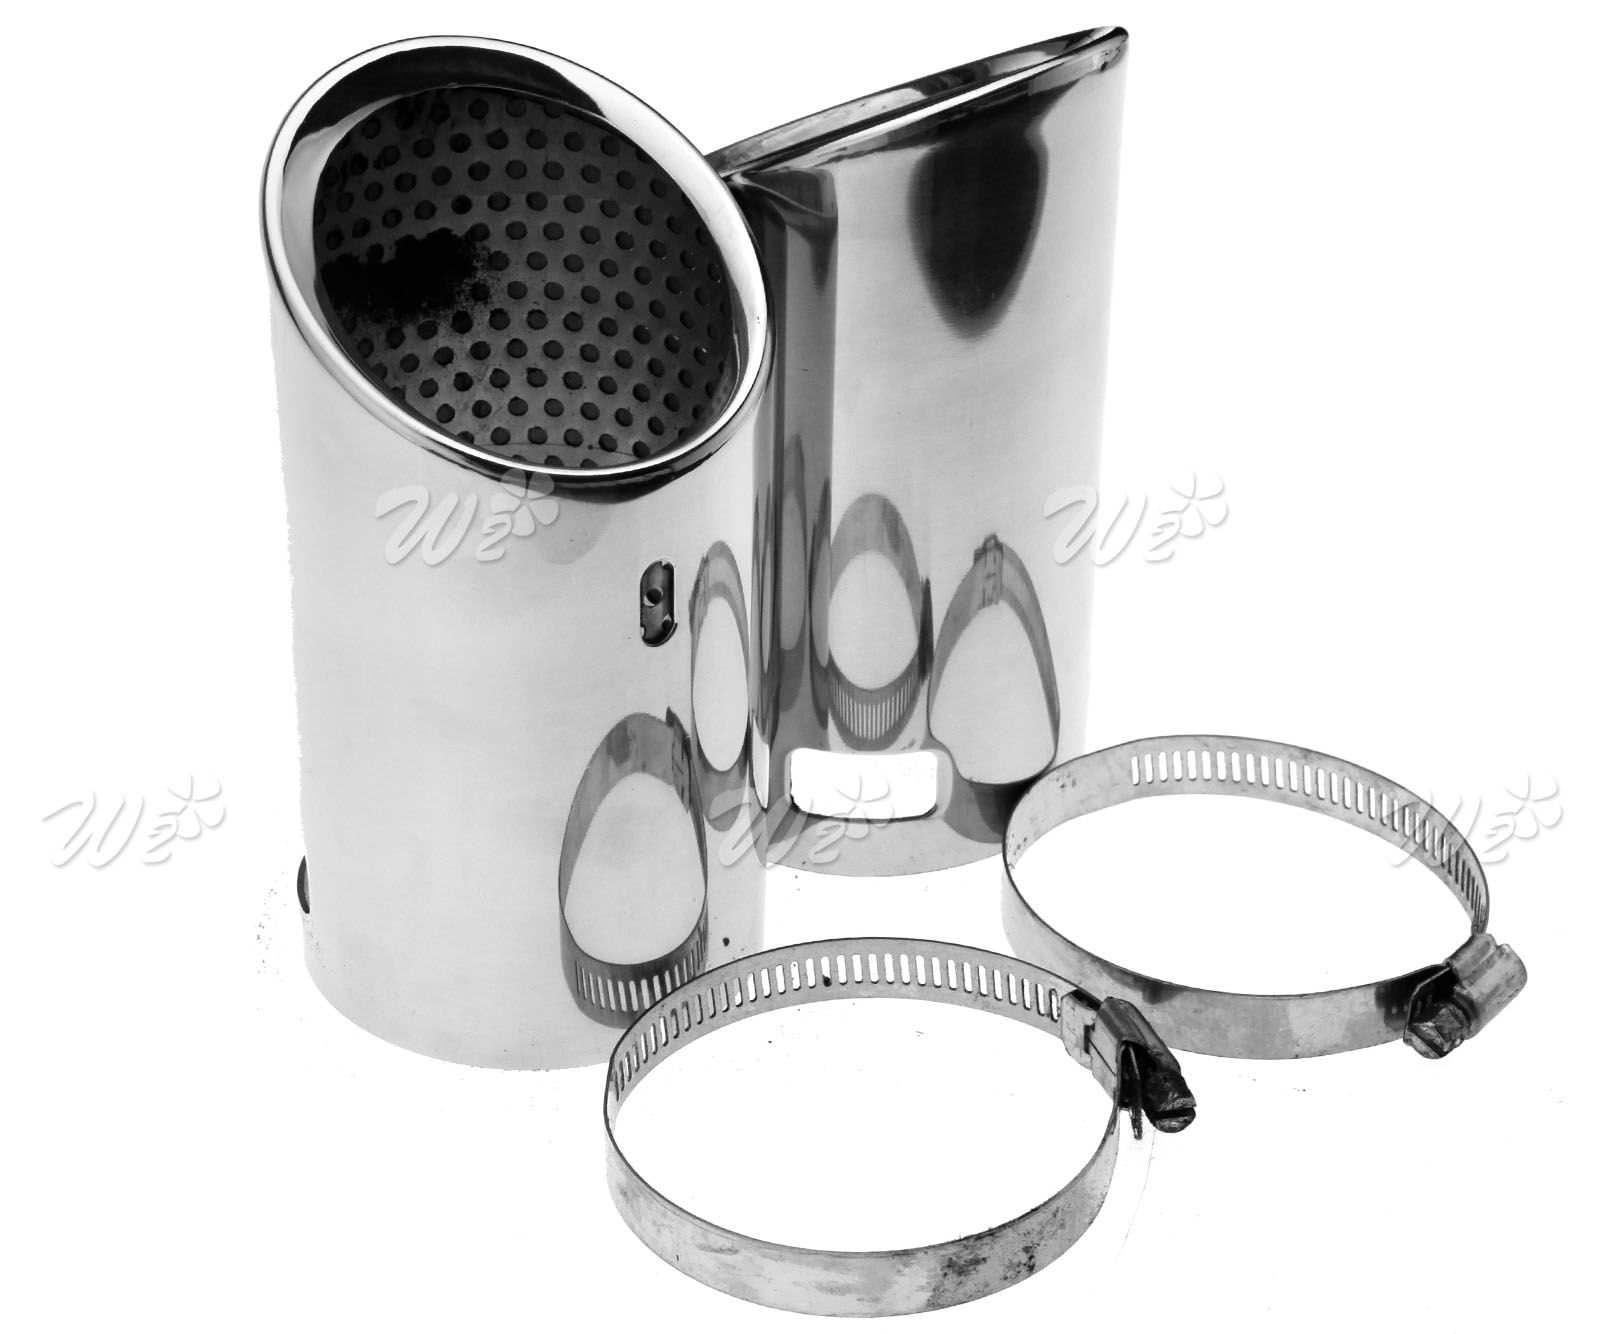 2 Pieces Stainless Steel Tip Pipe Exhaust Tail For VW CC